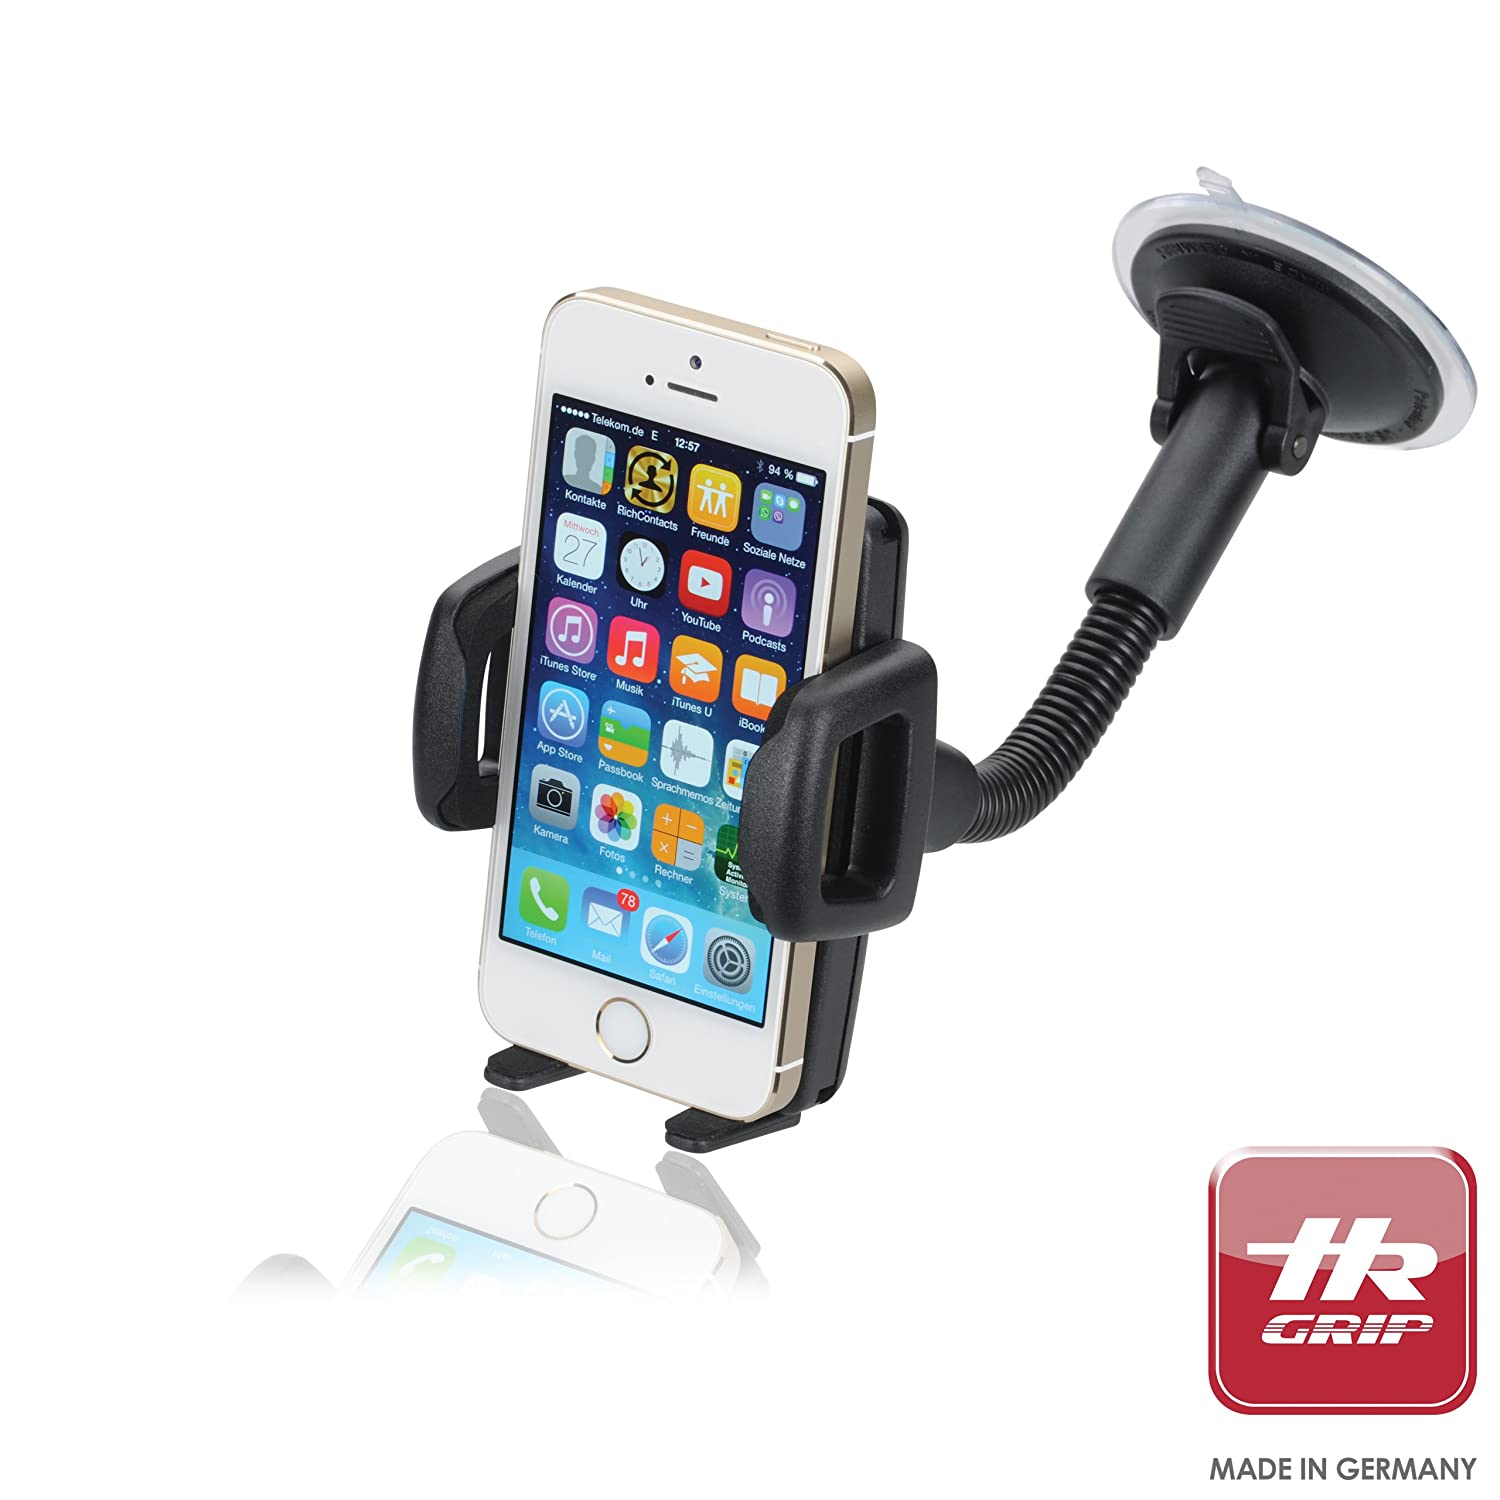 most 5 Smartphones and MP3 Players Samsung Galaxy S4//S3 HR Grip Flex Kit Universal Suction Dashboard and Windsheild Car Mount Holder for iPhone 5S//5C//5//4S//4